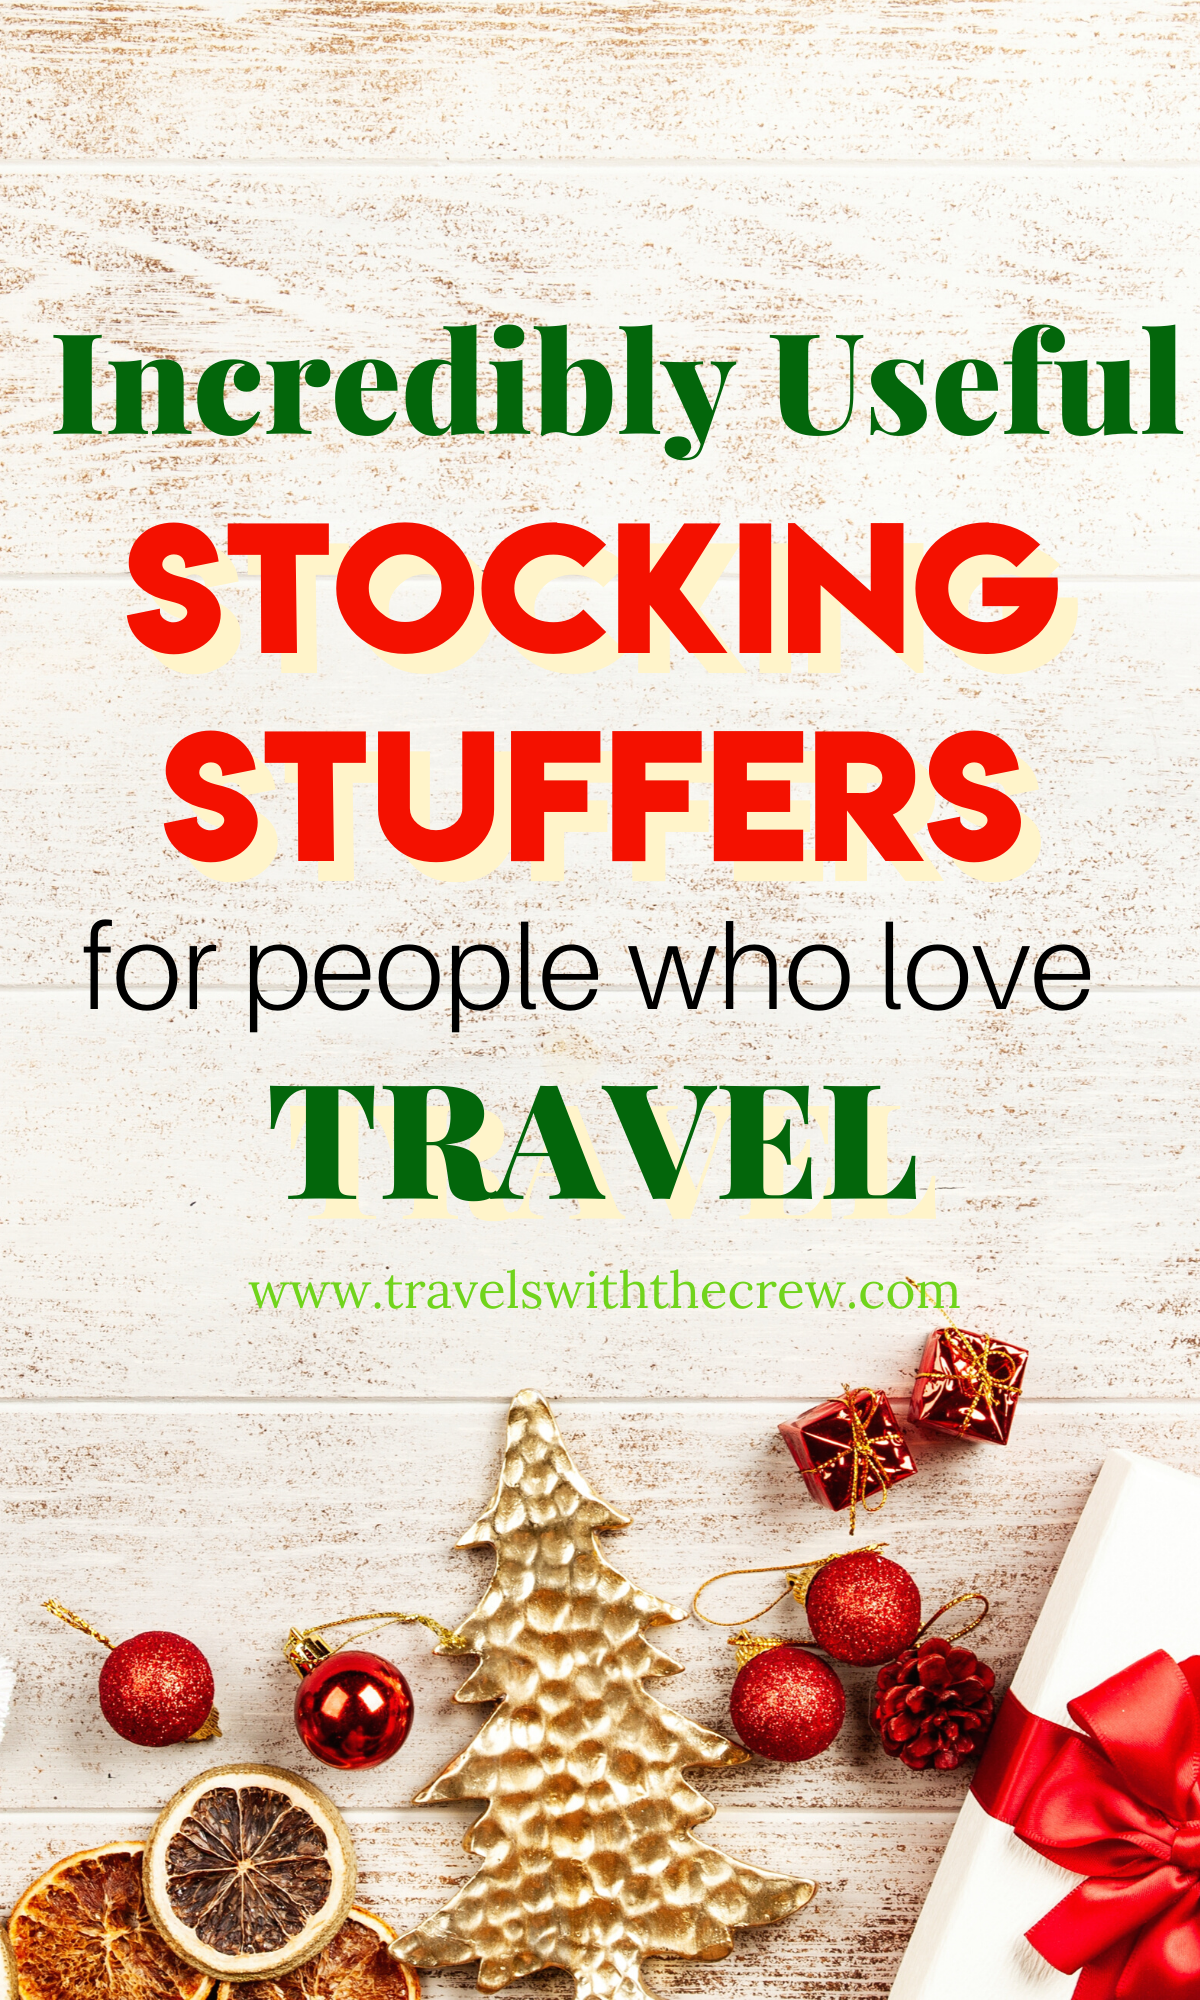 Christmas gifts for travelers, stocking stuffers for travel, #usefulstockingstuffers #travelgifts #Christmastravel #giftoftravel #travelgear